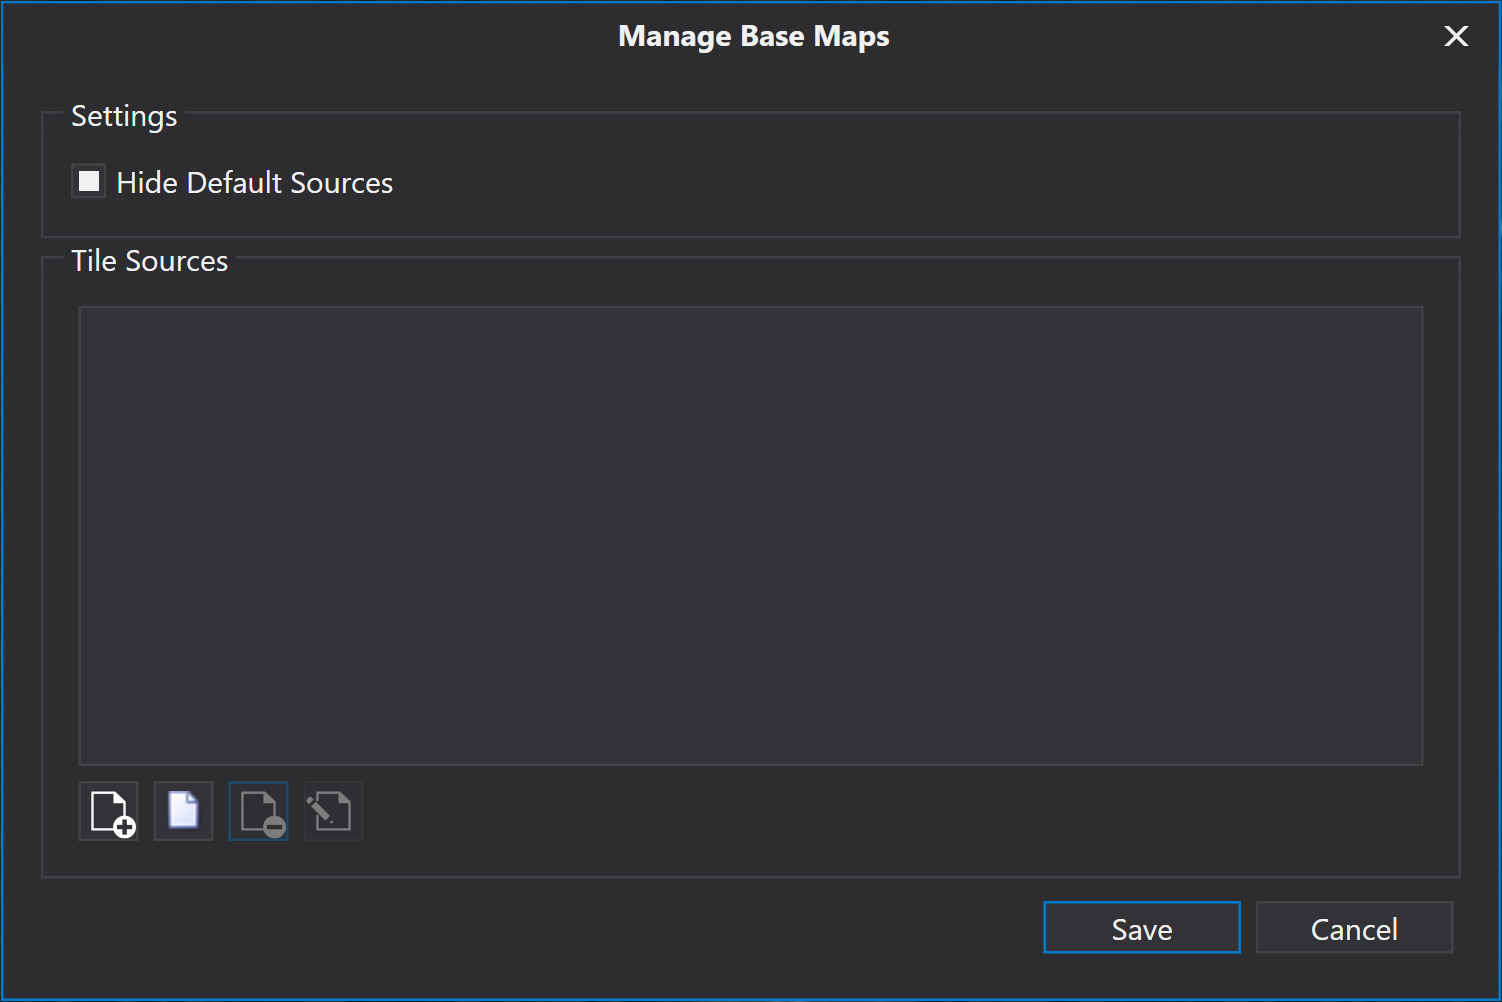 Manage Base Maps